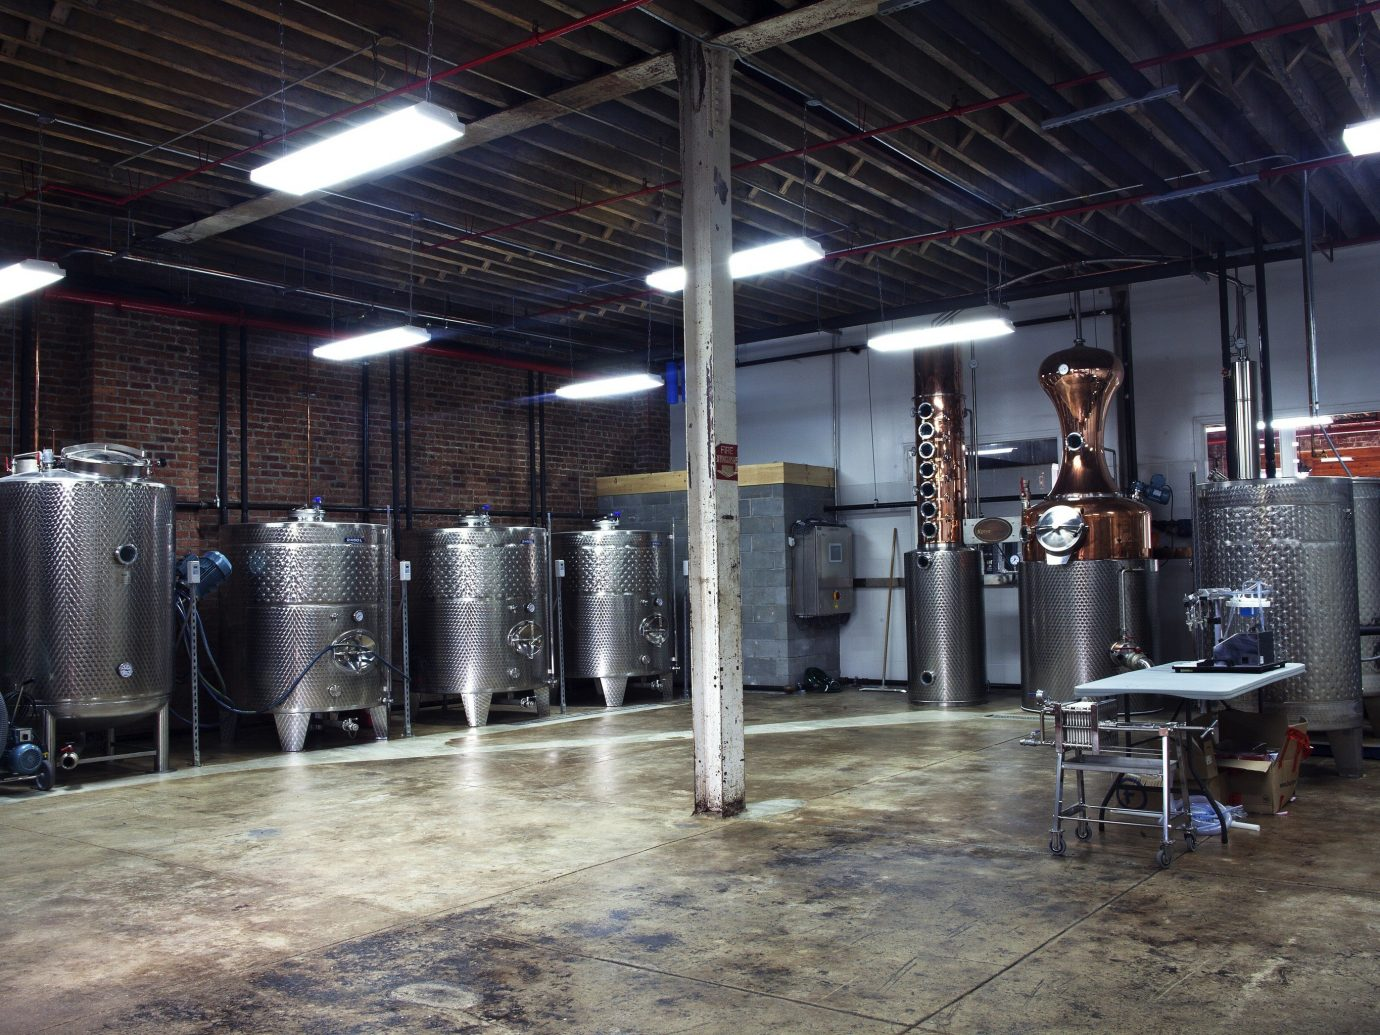 Brooklyn Food + Drink industry factory brewery warehouse machine manufacturing